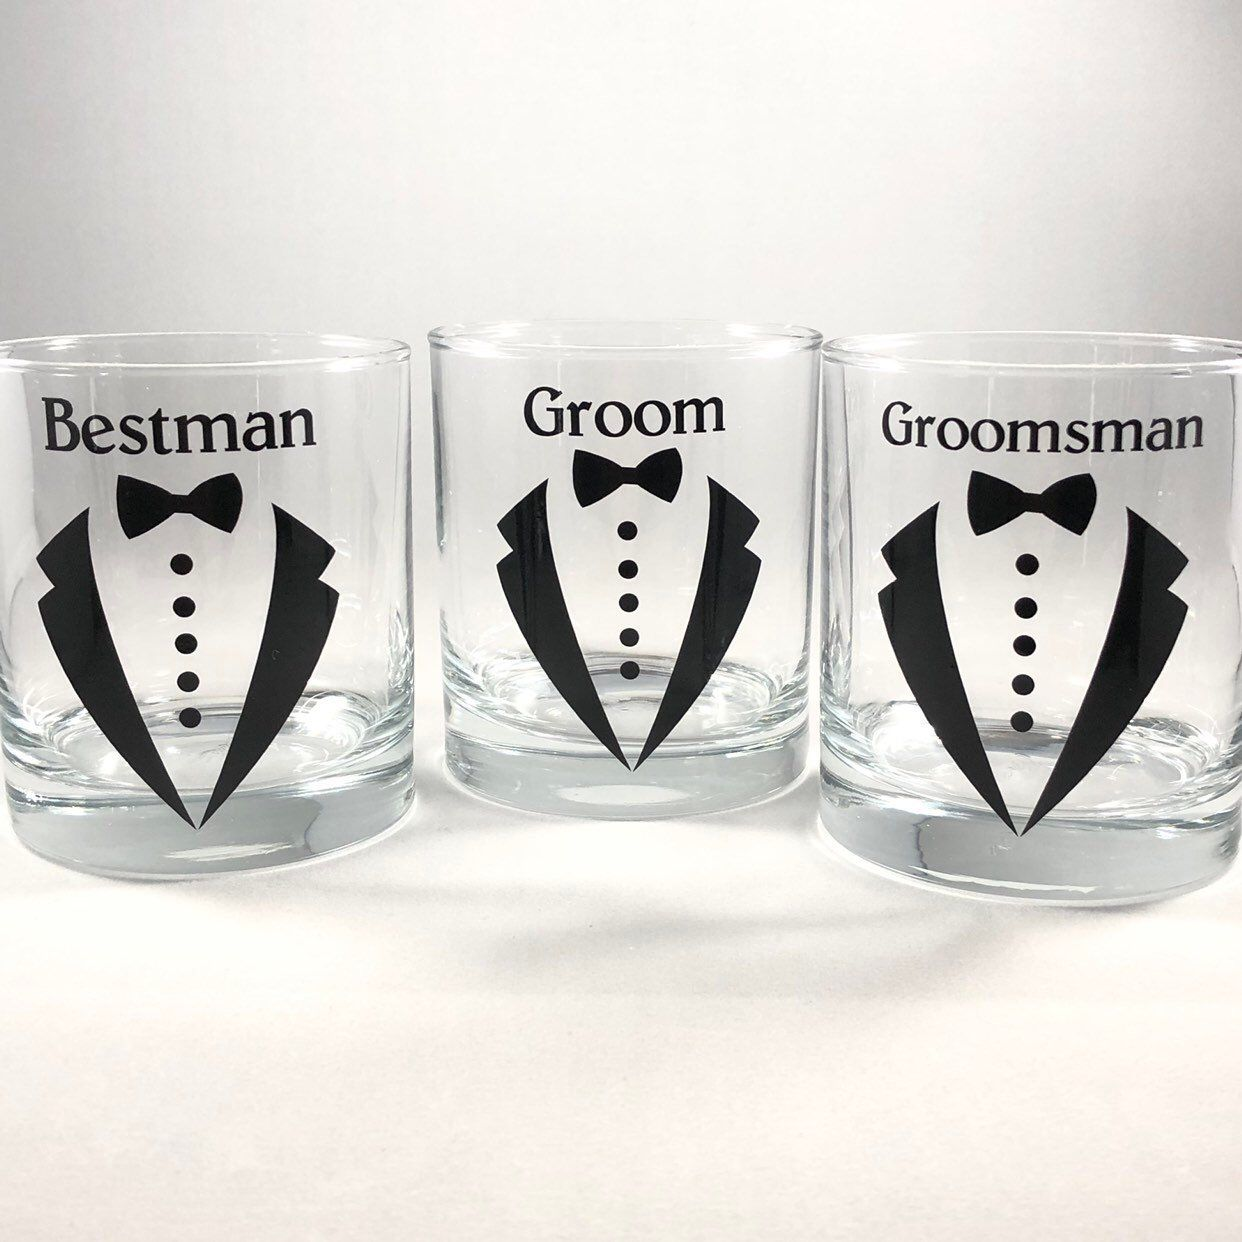 Groomsmen Gift Bestman Gift Idea Bridal Party Gifts Bridesmaid Etsy Gifts For Wedding Party Personalized Wedding Gifts Groomsman Gifts